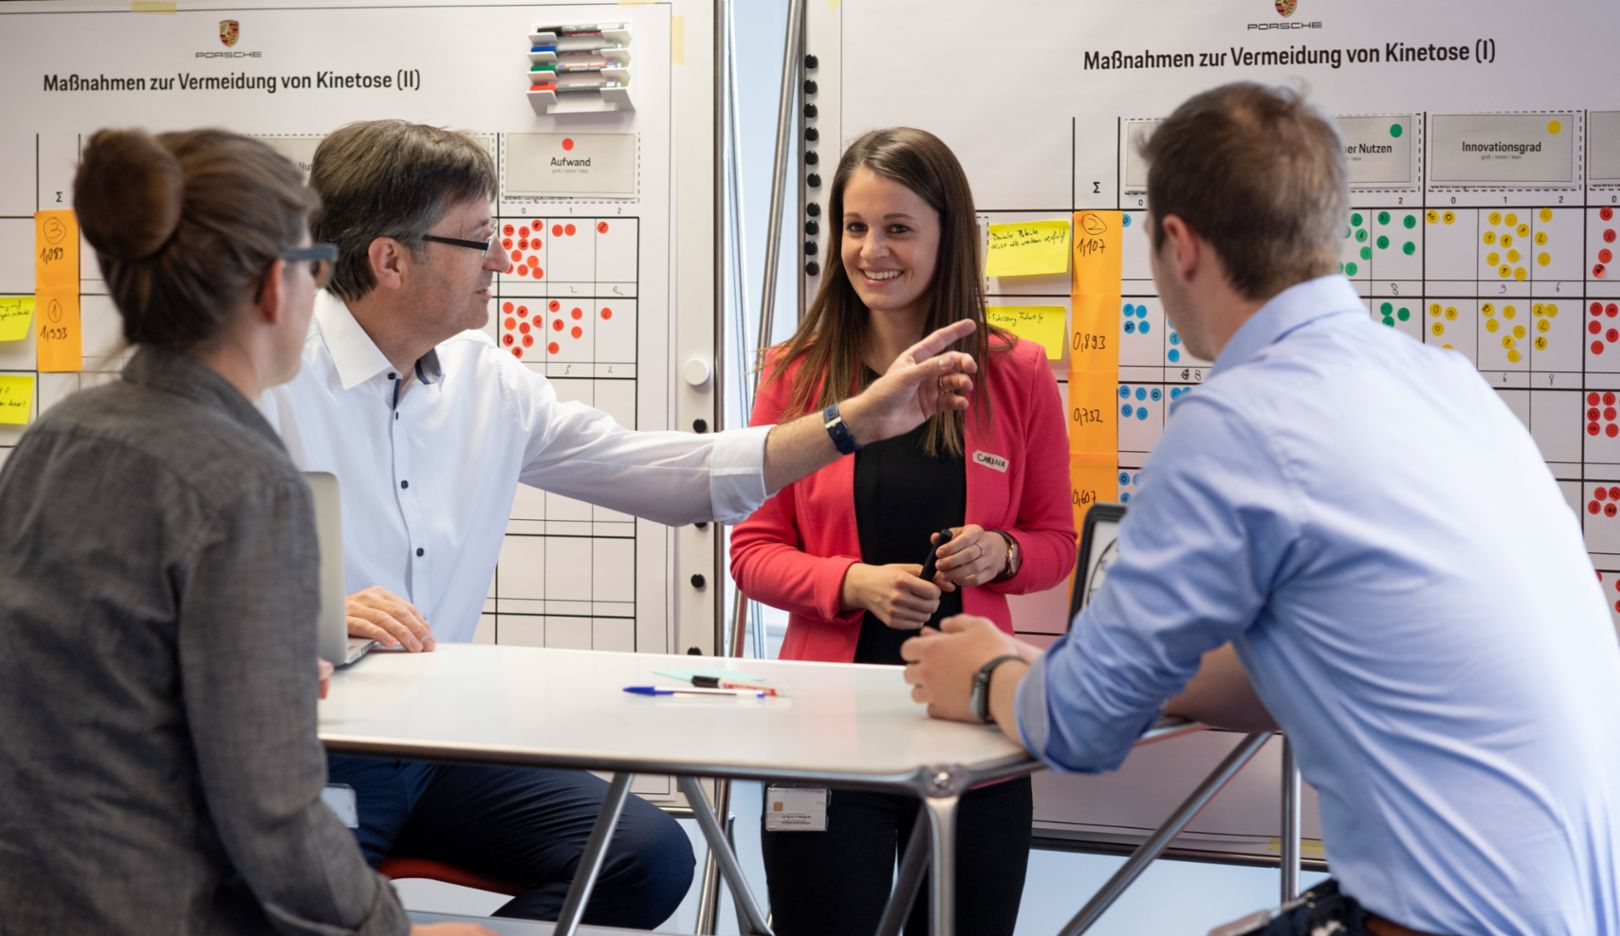 Uwe Reuter (2nd from left), Porsche developer, 2019, Porsche Consulting GmbH